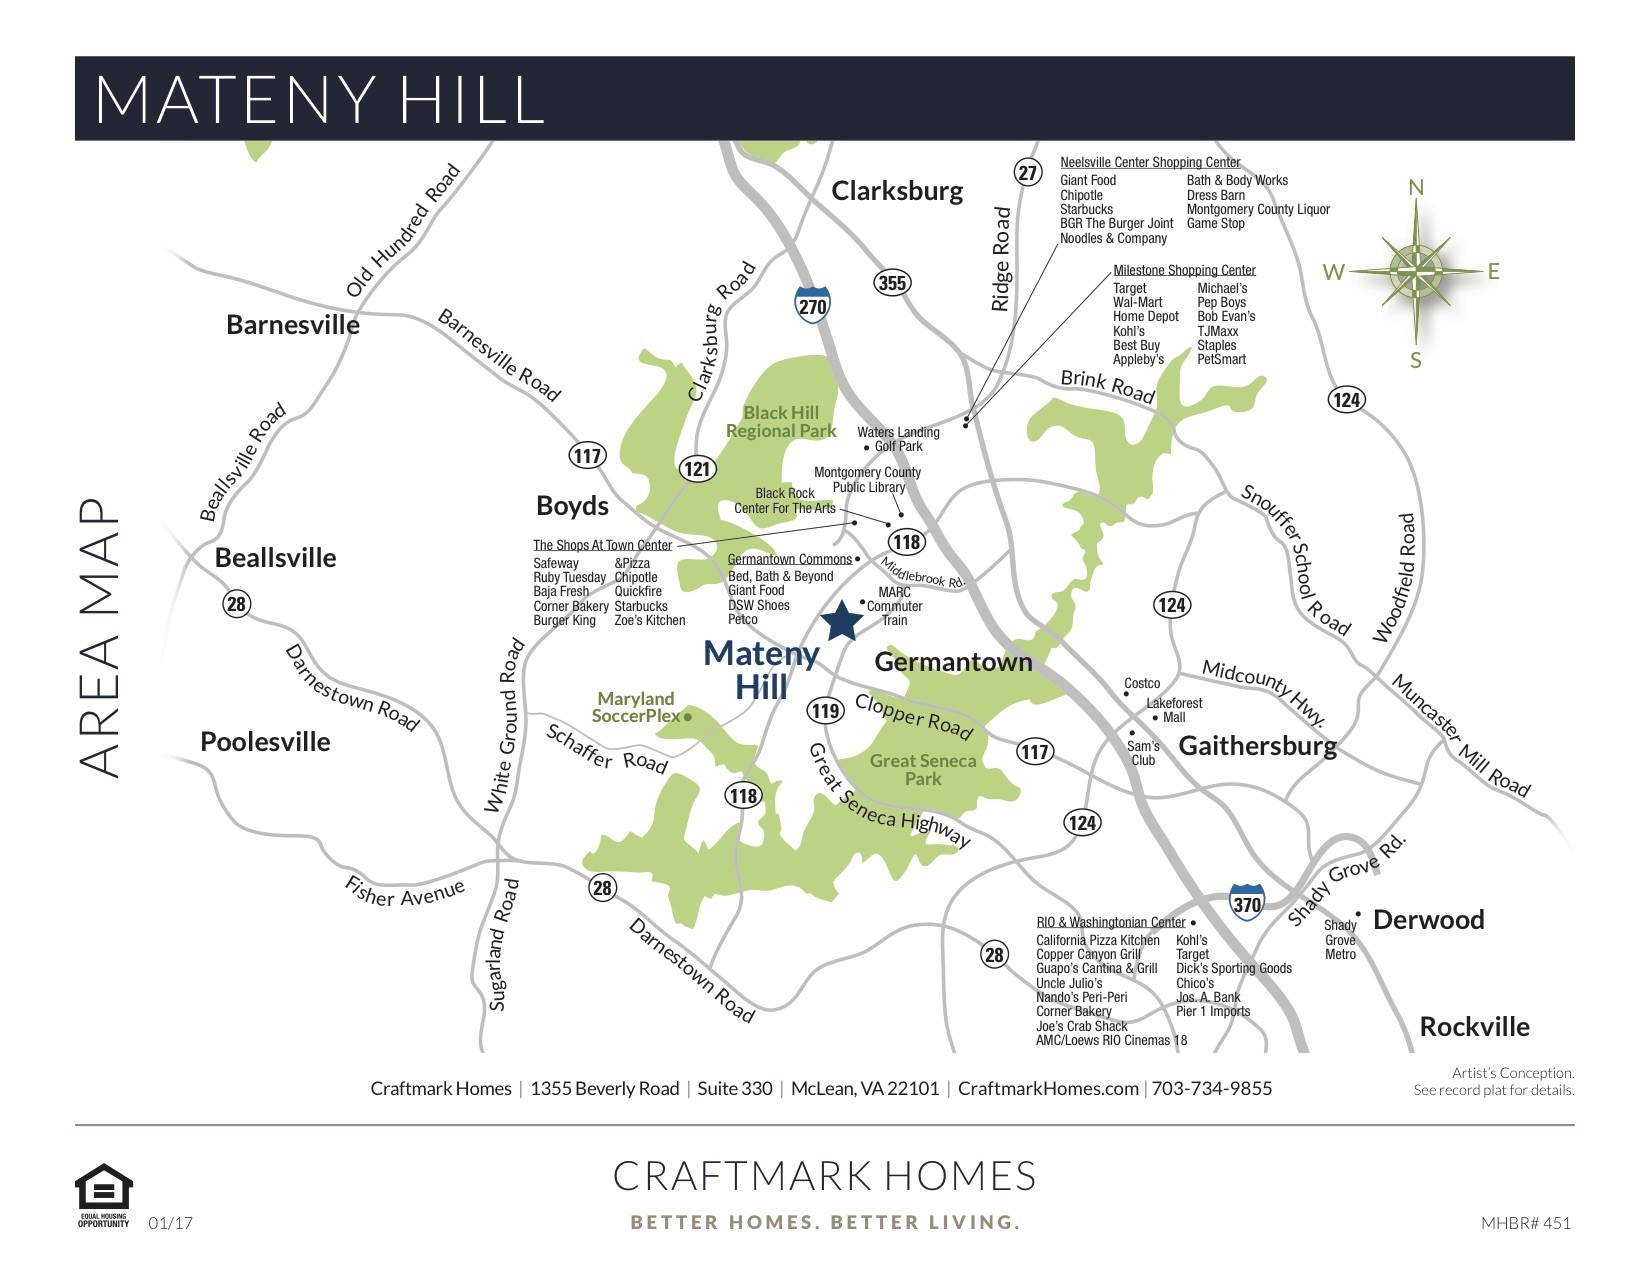 Mateny Hill by Craftmark Homes - Area Map